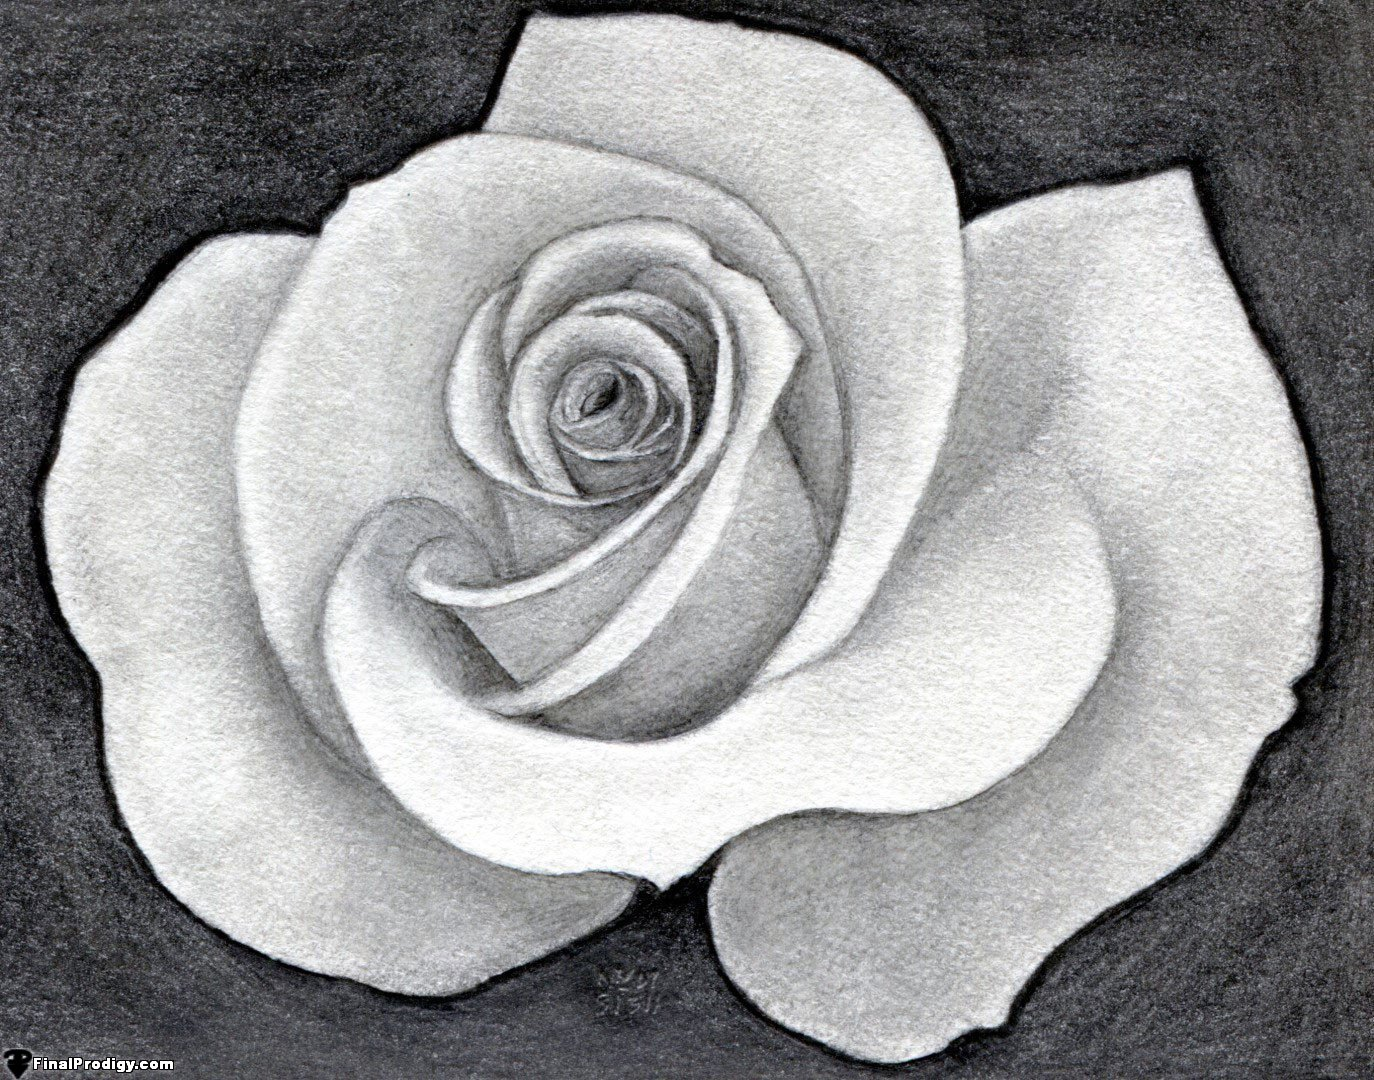 How to Draw a Pretty Rose - FinalProdigy.com